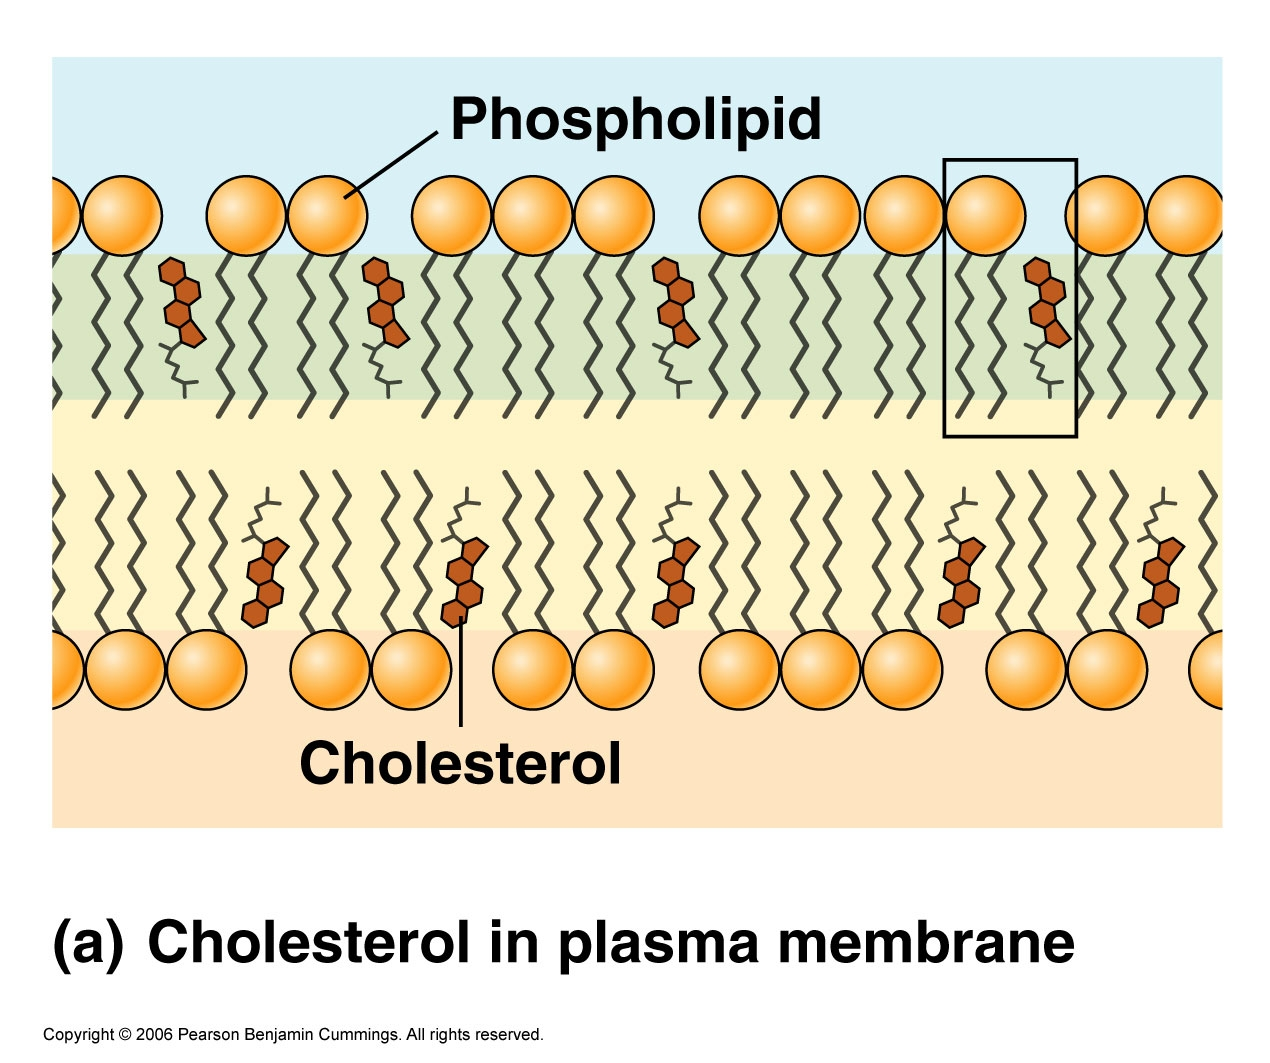 Cholesterol is an essential component of human cell membranes (source)